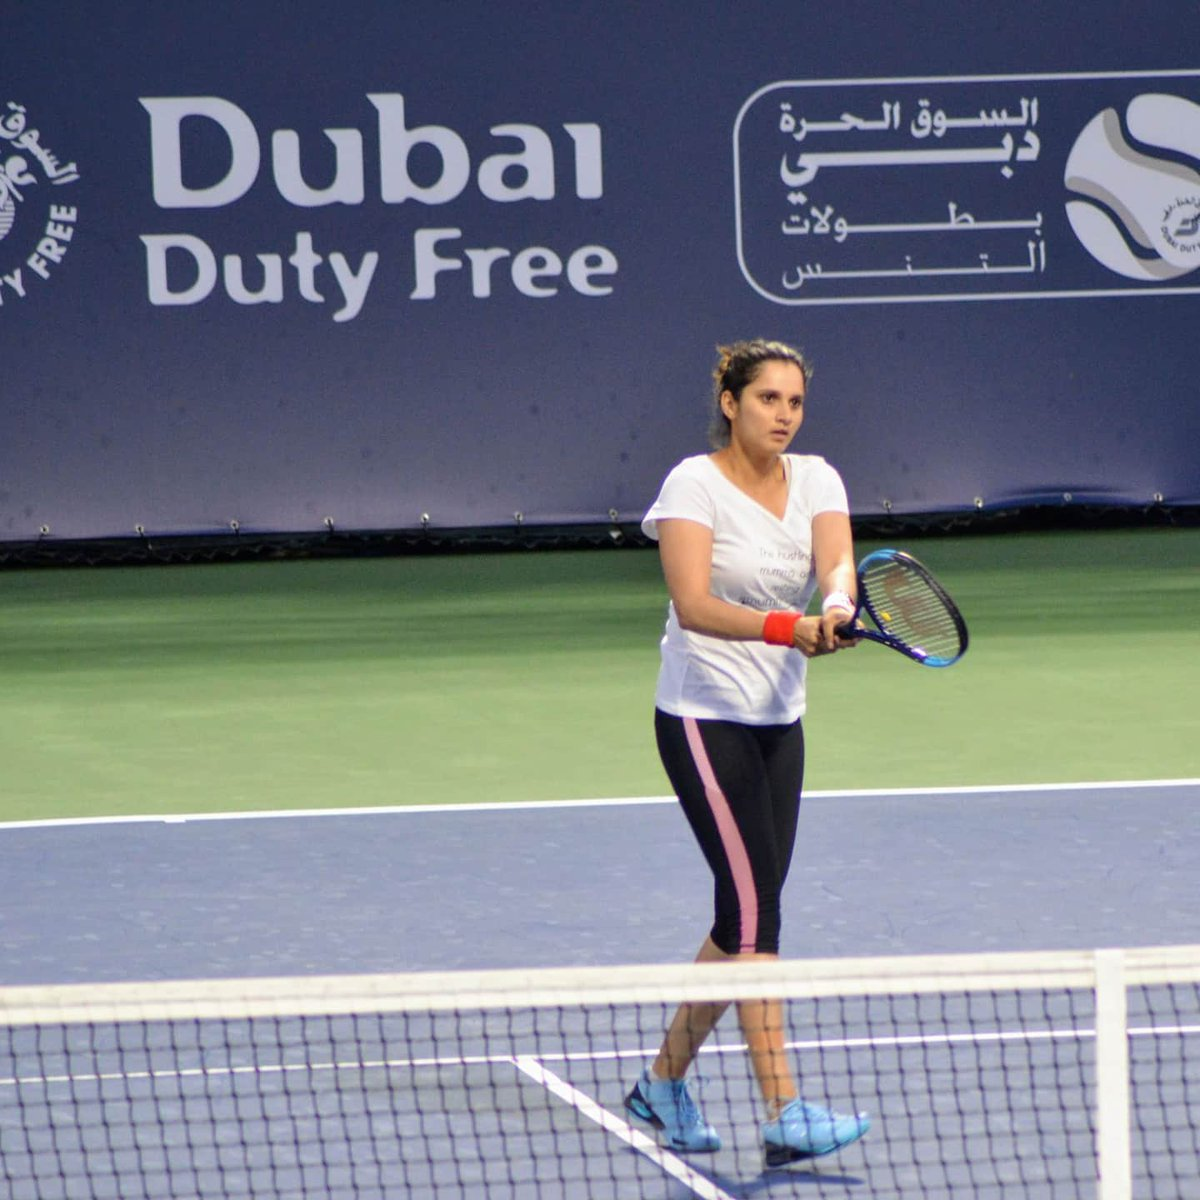 WTA Dubai - @MirzaSania has received a WC along with 🇫🇷Garcia. They will face 🇷🇺Kudryavtseva/🇸🇮Srebotnik in Round 1  Photos from her practice session, with father Imran and former Pakistani Davis Cupper Sadan Haq  📷Krishnakumar - a senior finance business leader in Dubai